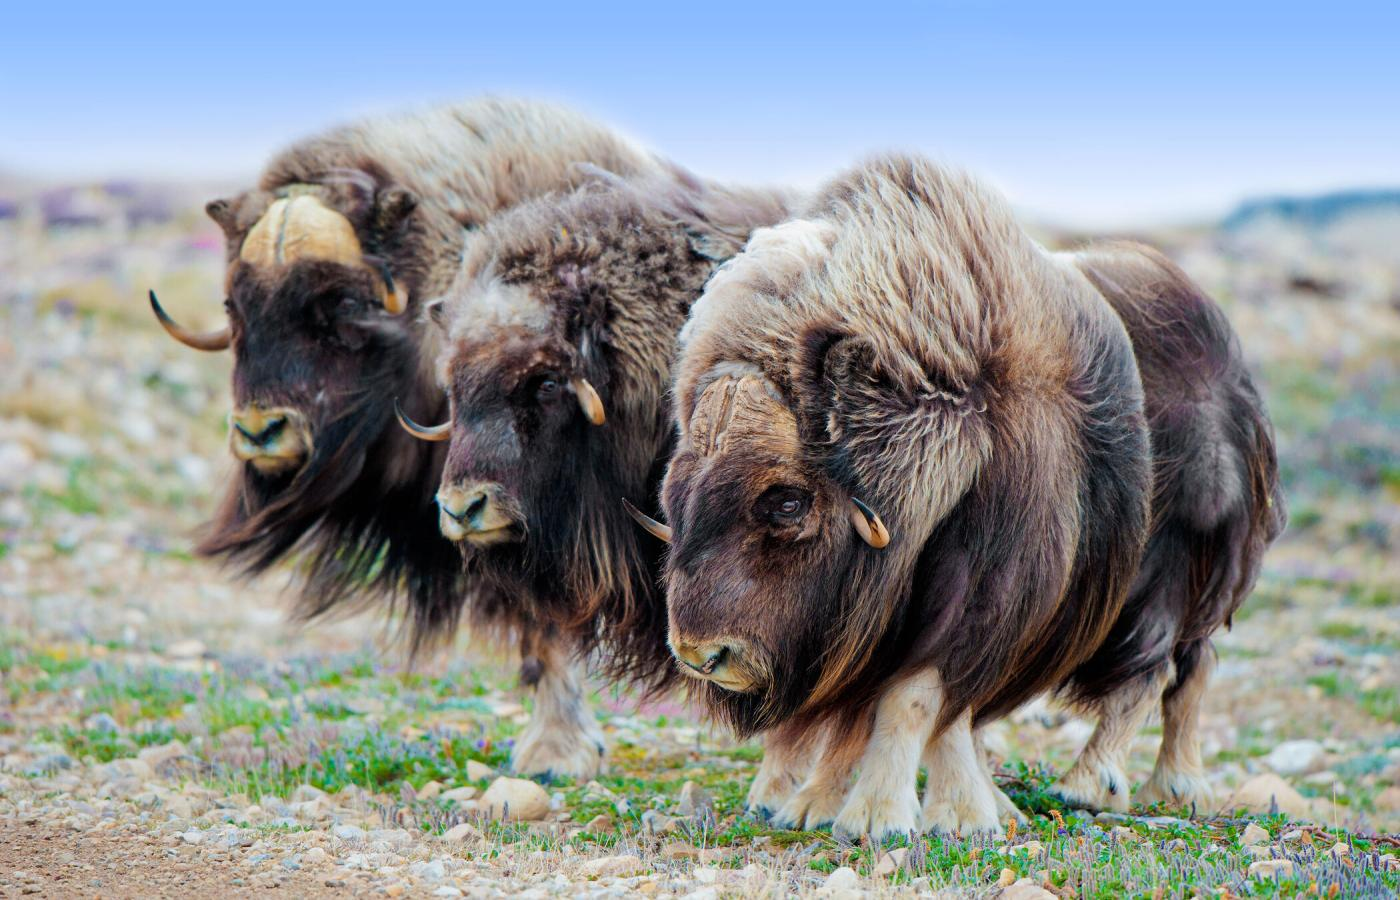 Muskoxen on the tundra in the NWT